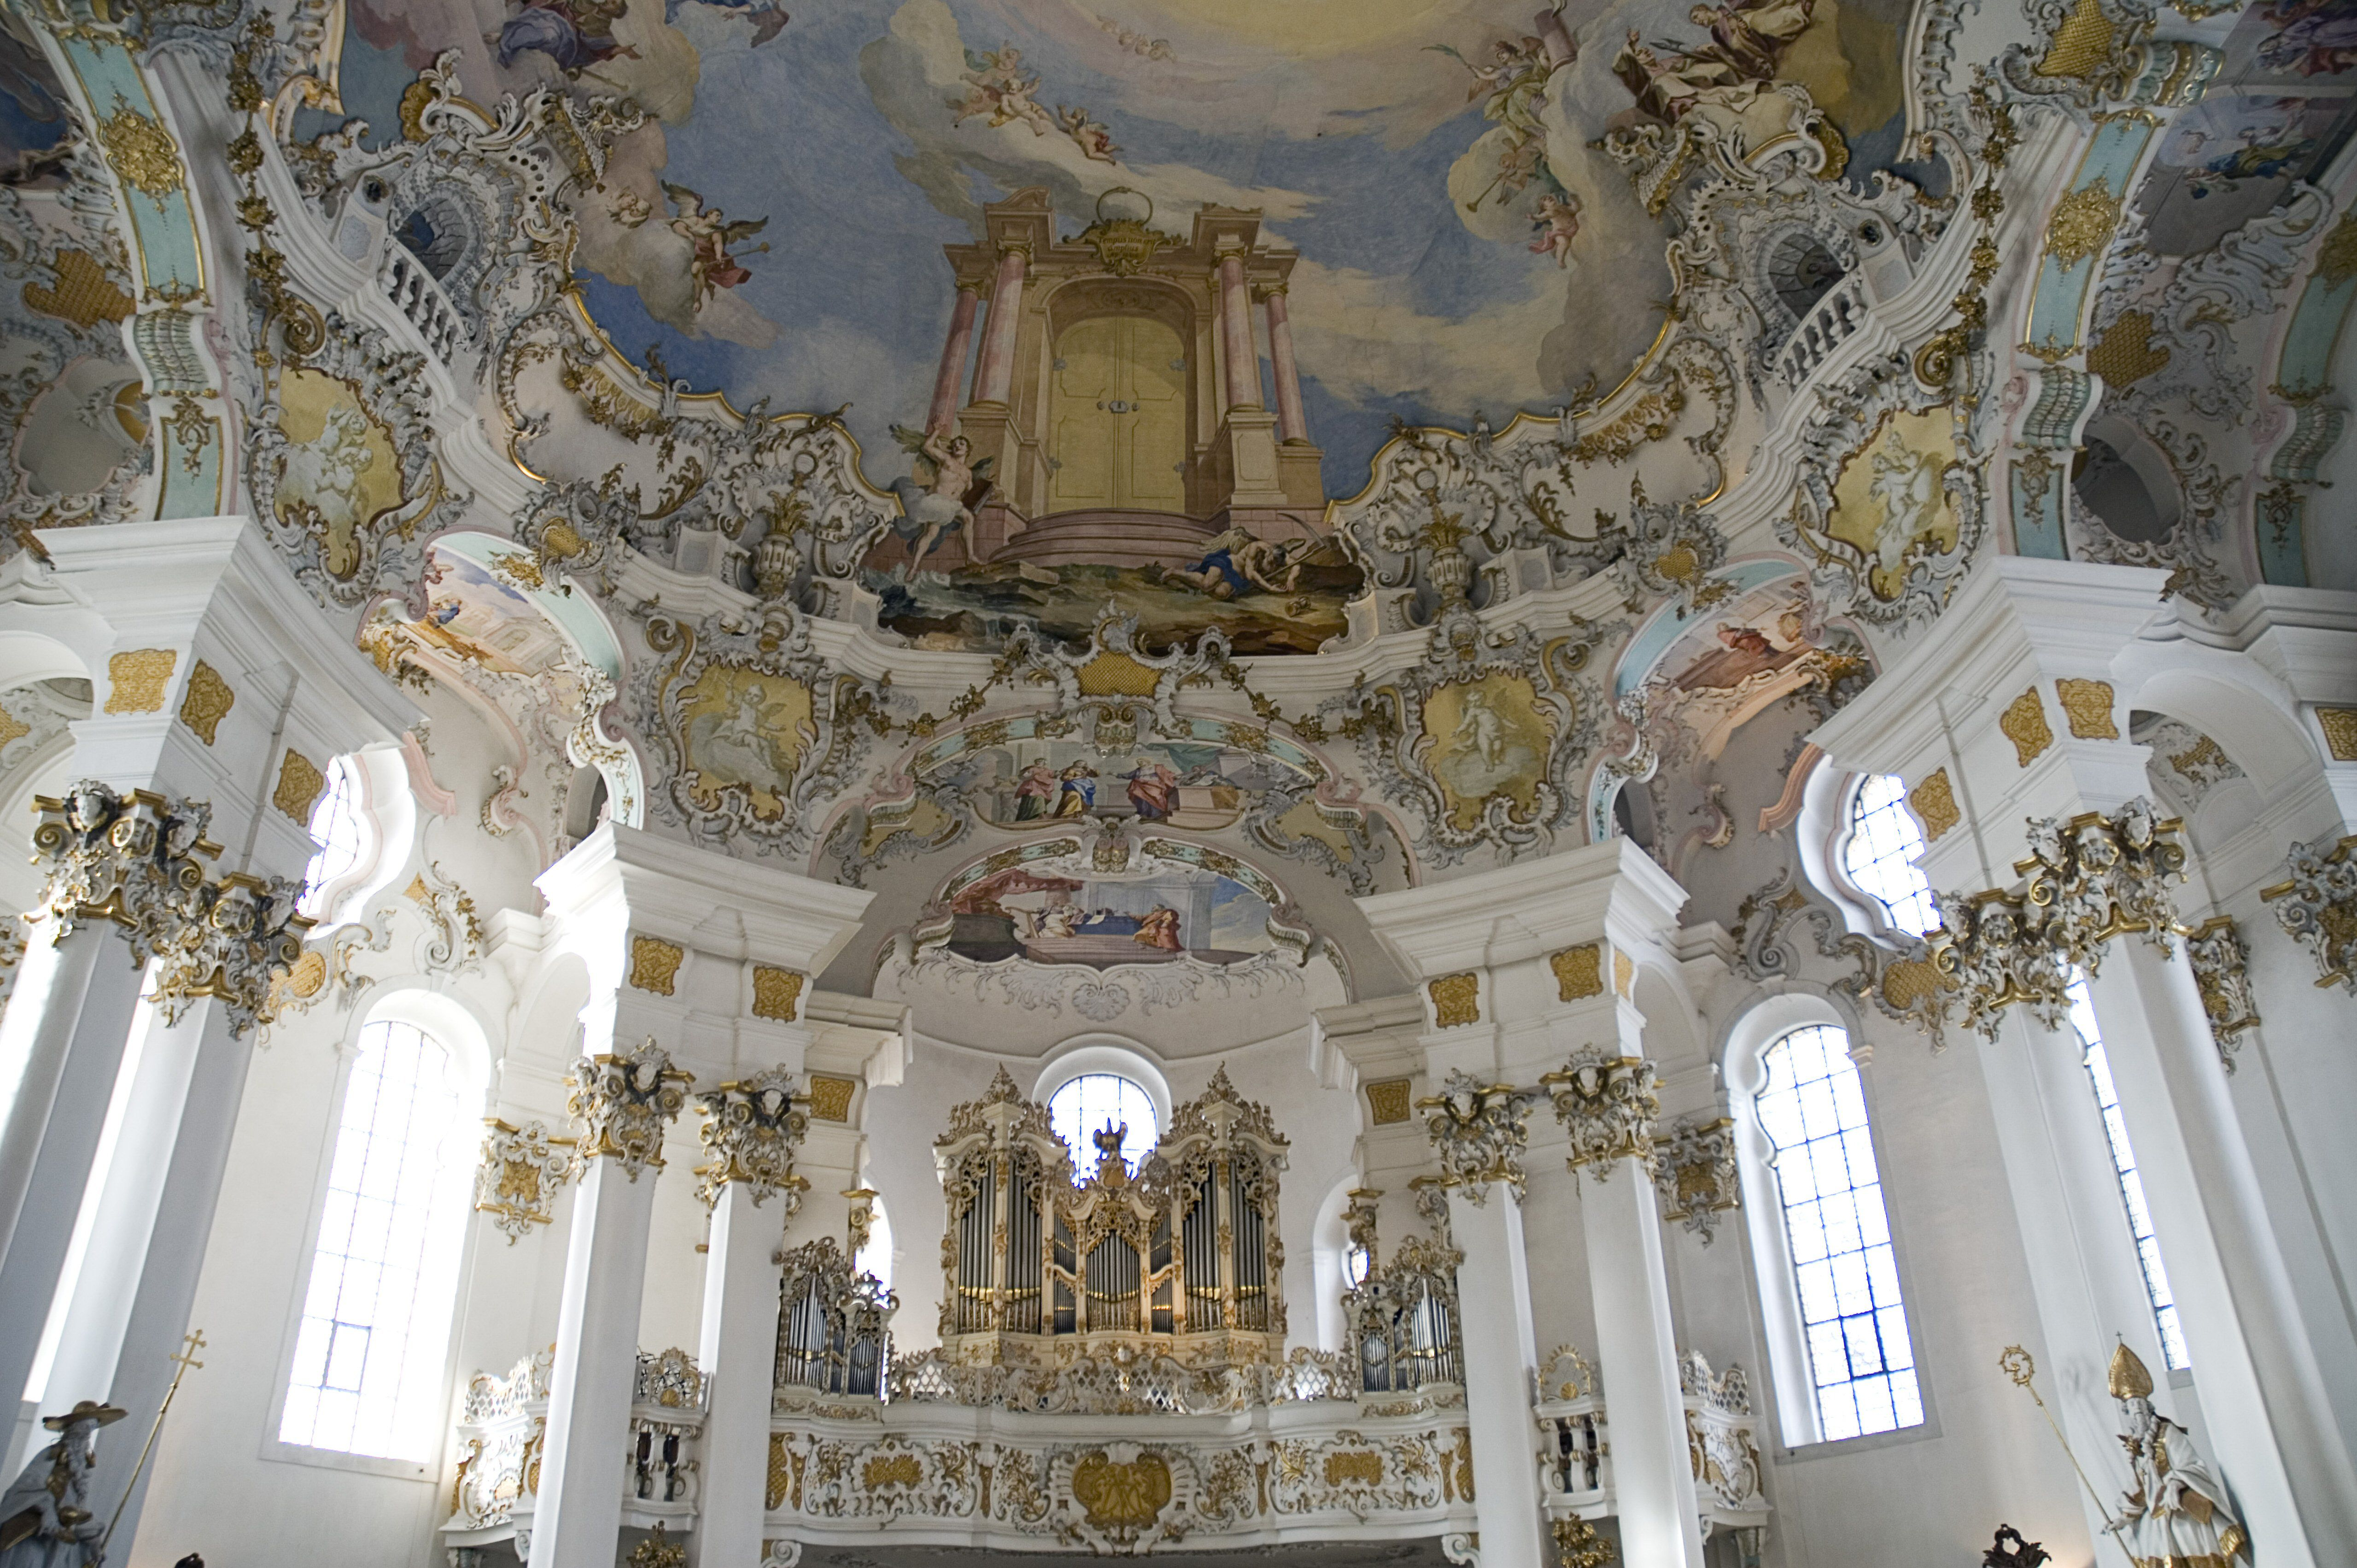 Germany, Bavaria, Wieskirche church interior view of the church organ and frescoes on ceiling depicting Door of Heaven / Paradise